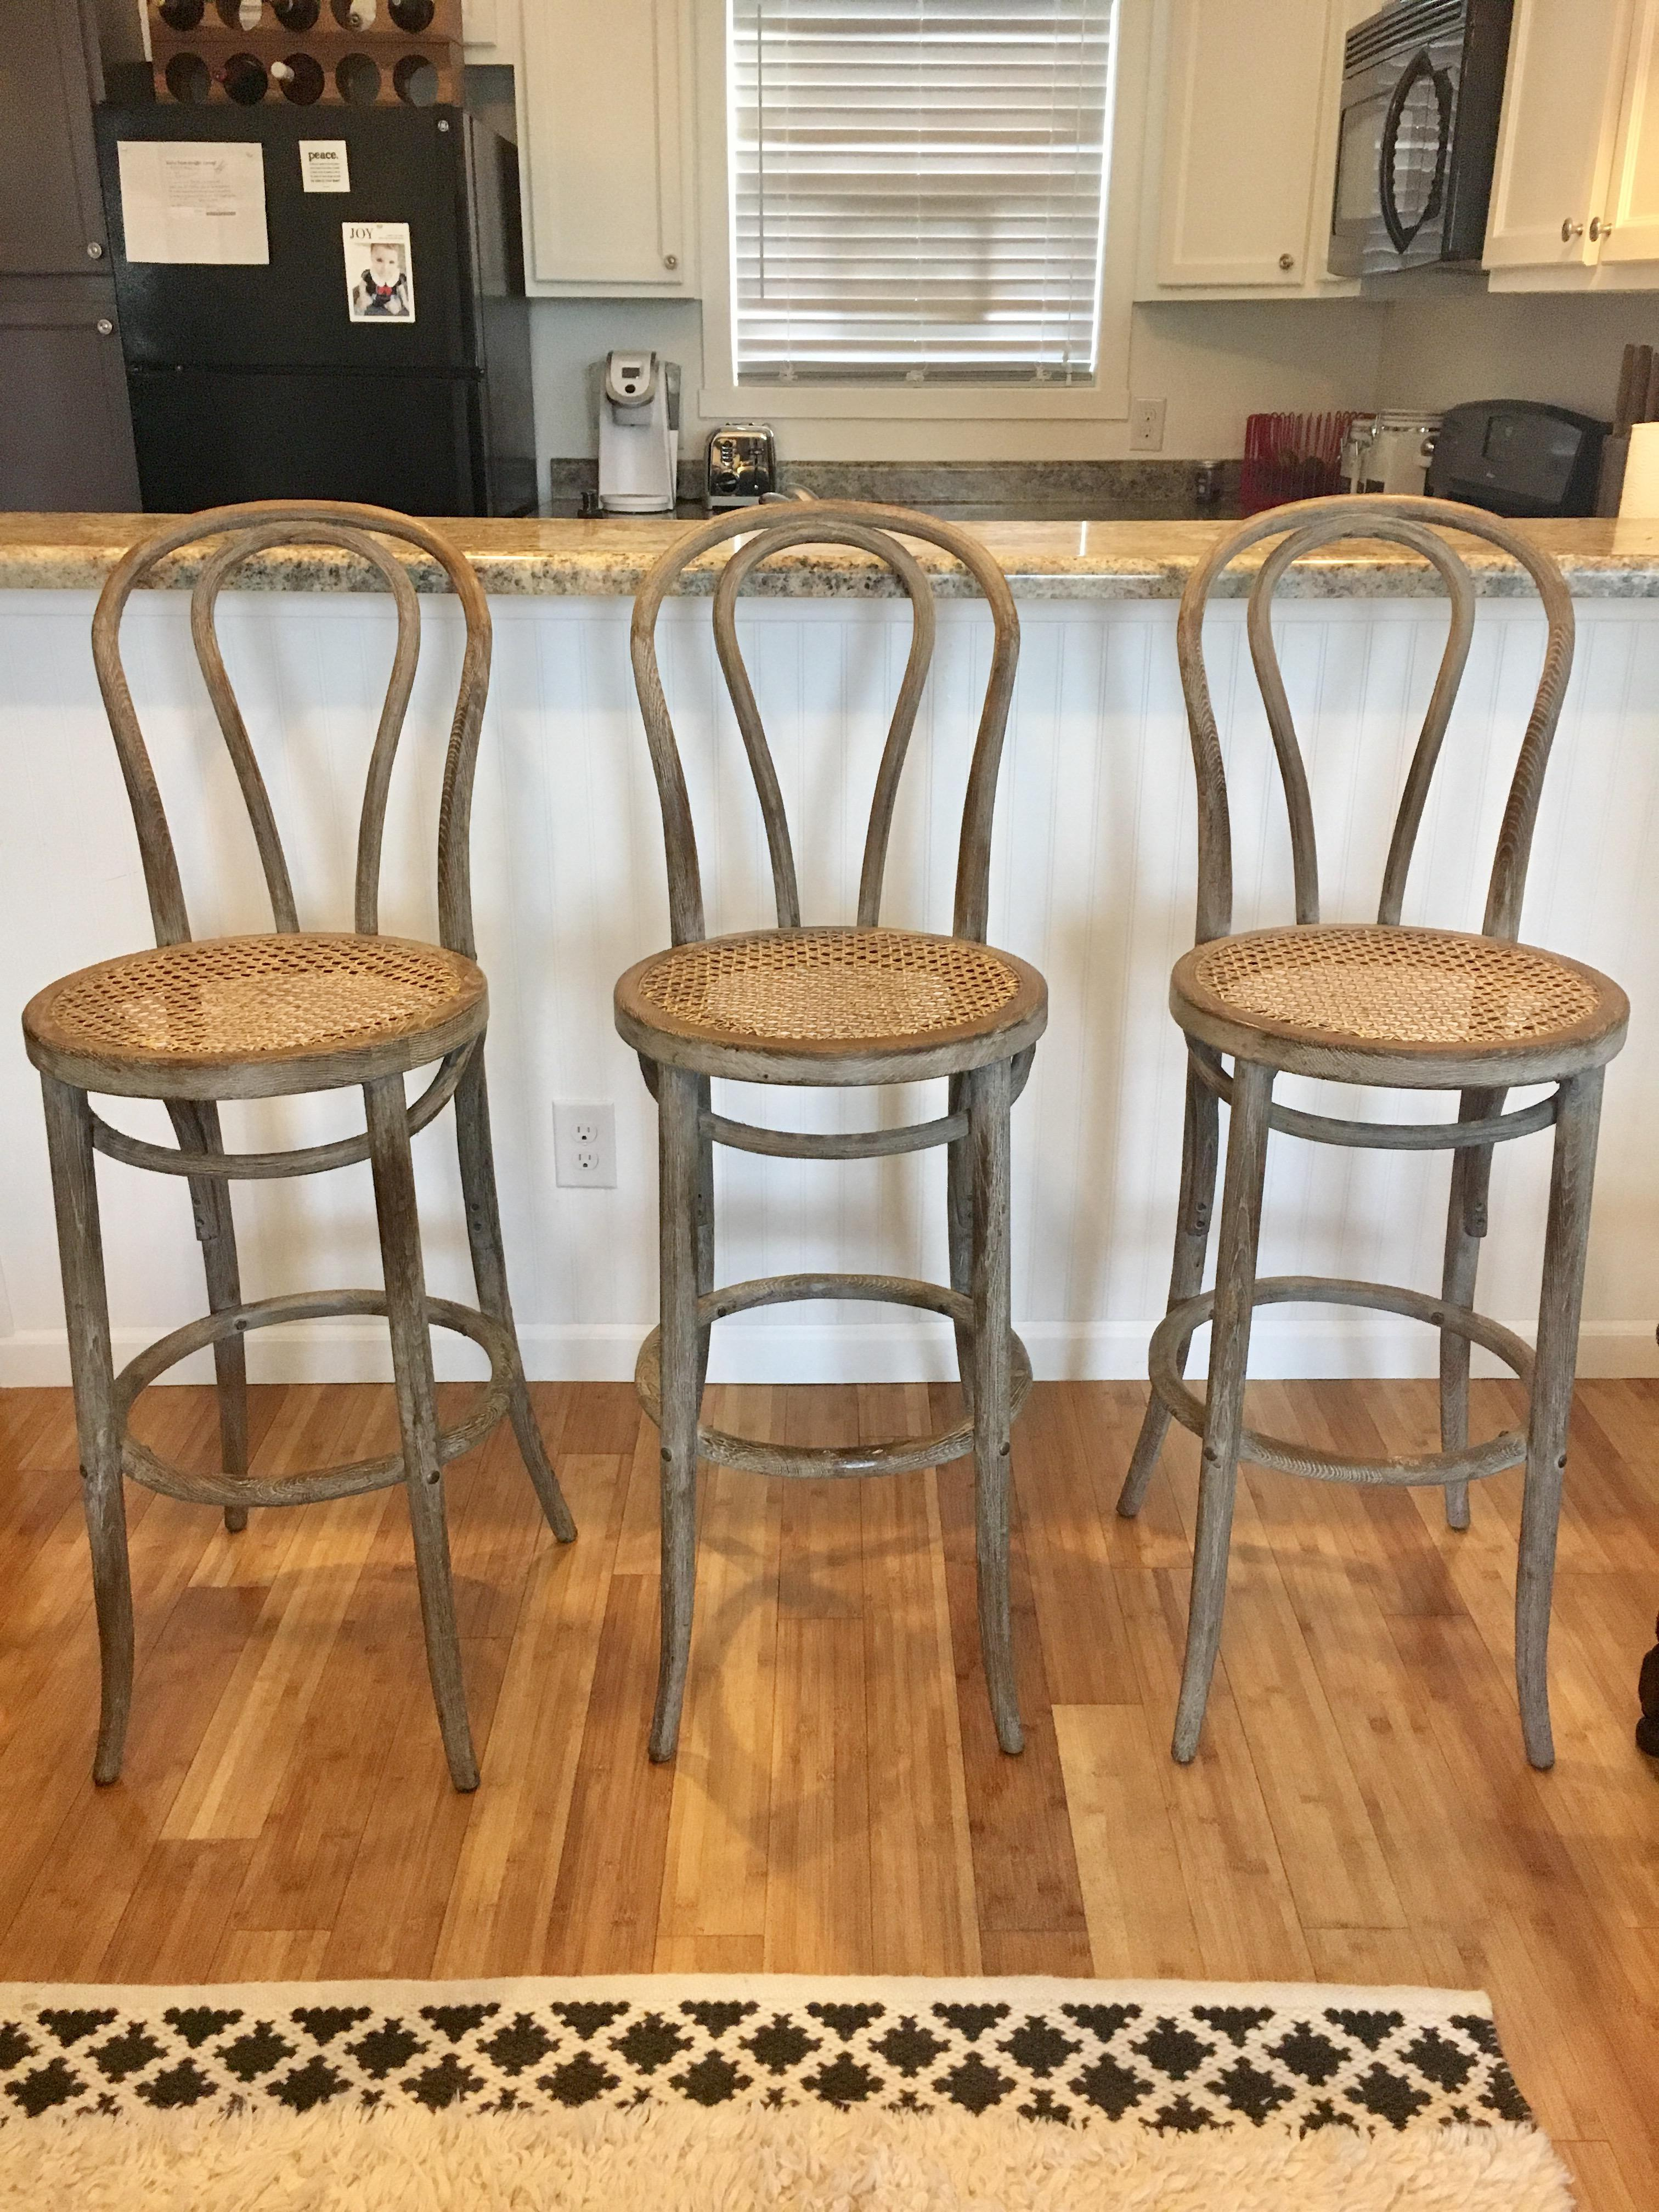 Favorite Restoration Hardware French Cafe Barstools - Set of 3 | Chairish HF81